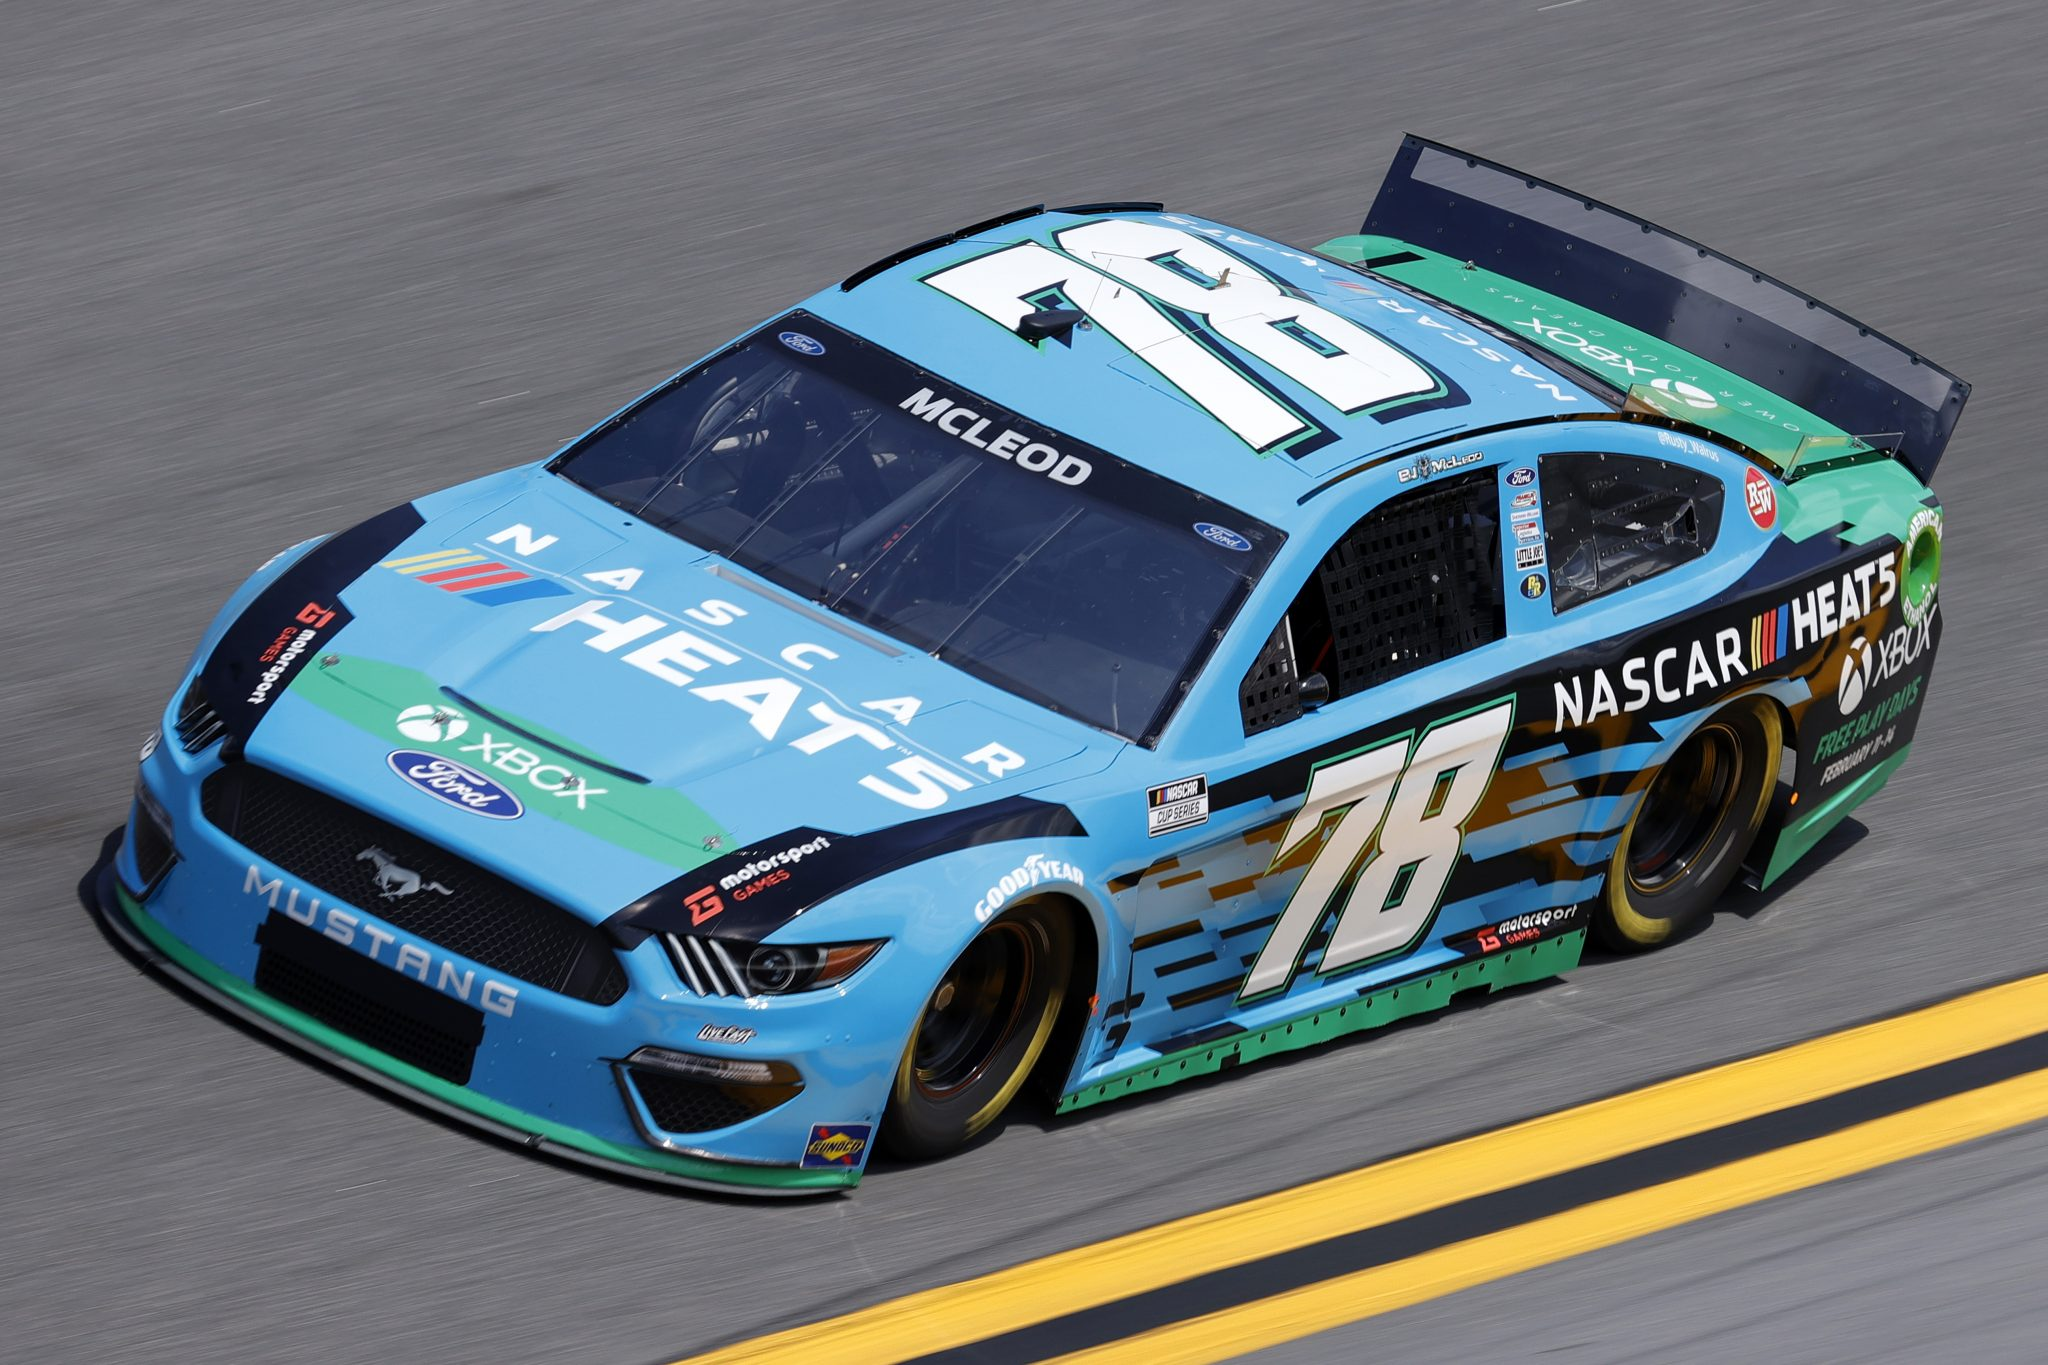 DAYTONA BEACH, FLORIDA - FEBRUARY 10: BJ McLeod,driver of the #78 Ford drives during practice for the NASCAR Cup Series 63rd Annual Daytona 500 at Daytona International Speedway on February 10, 2021 in Daytona Beach, Florida. (Photo by Jared C. Tilton/Getty Images) | Getty Images